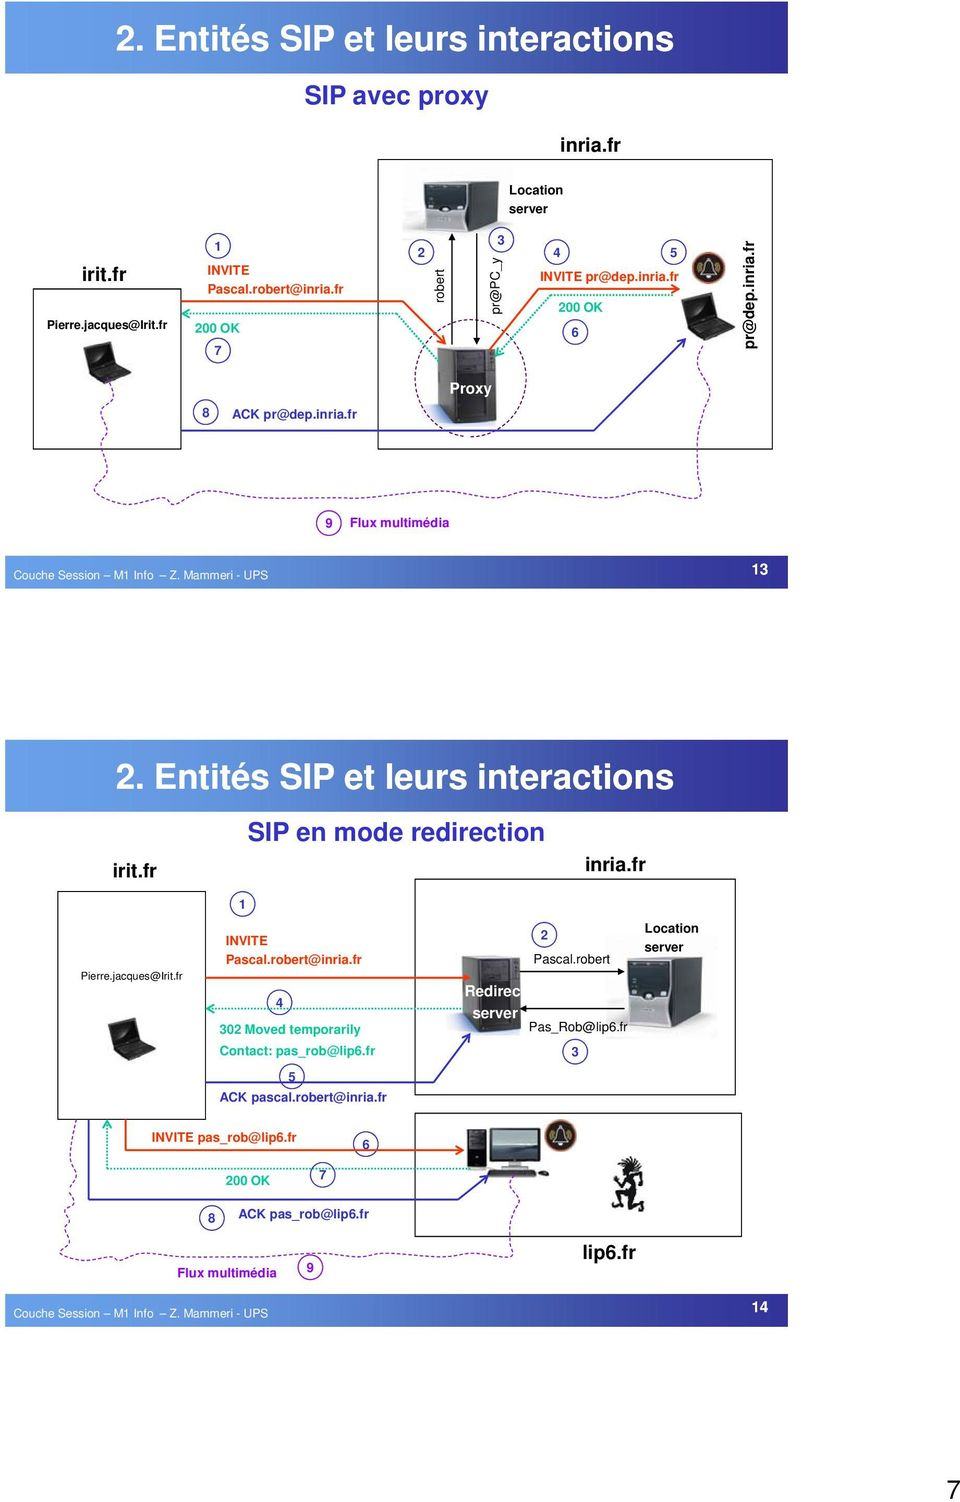 Entités SIP et leurs interactions irit.fr SIP en mode redirection inria.fr 1 Pierre.jacques@Irit.fr INVITE Pascal.robert@inria.fr 4 302 Moved temporarily Redirect server 2 Pascal.